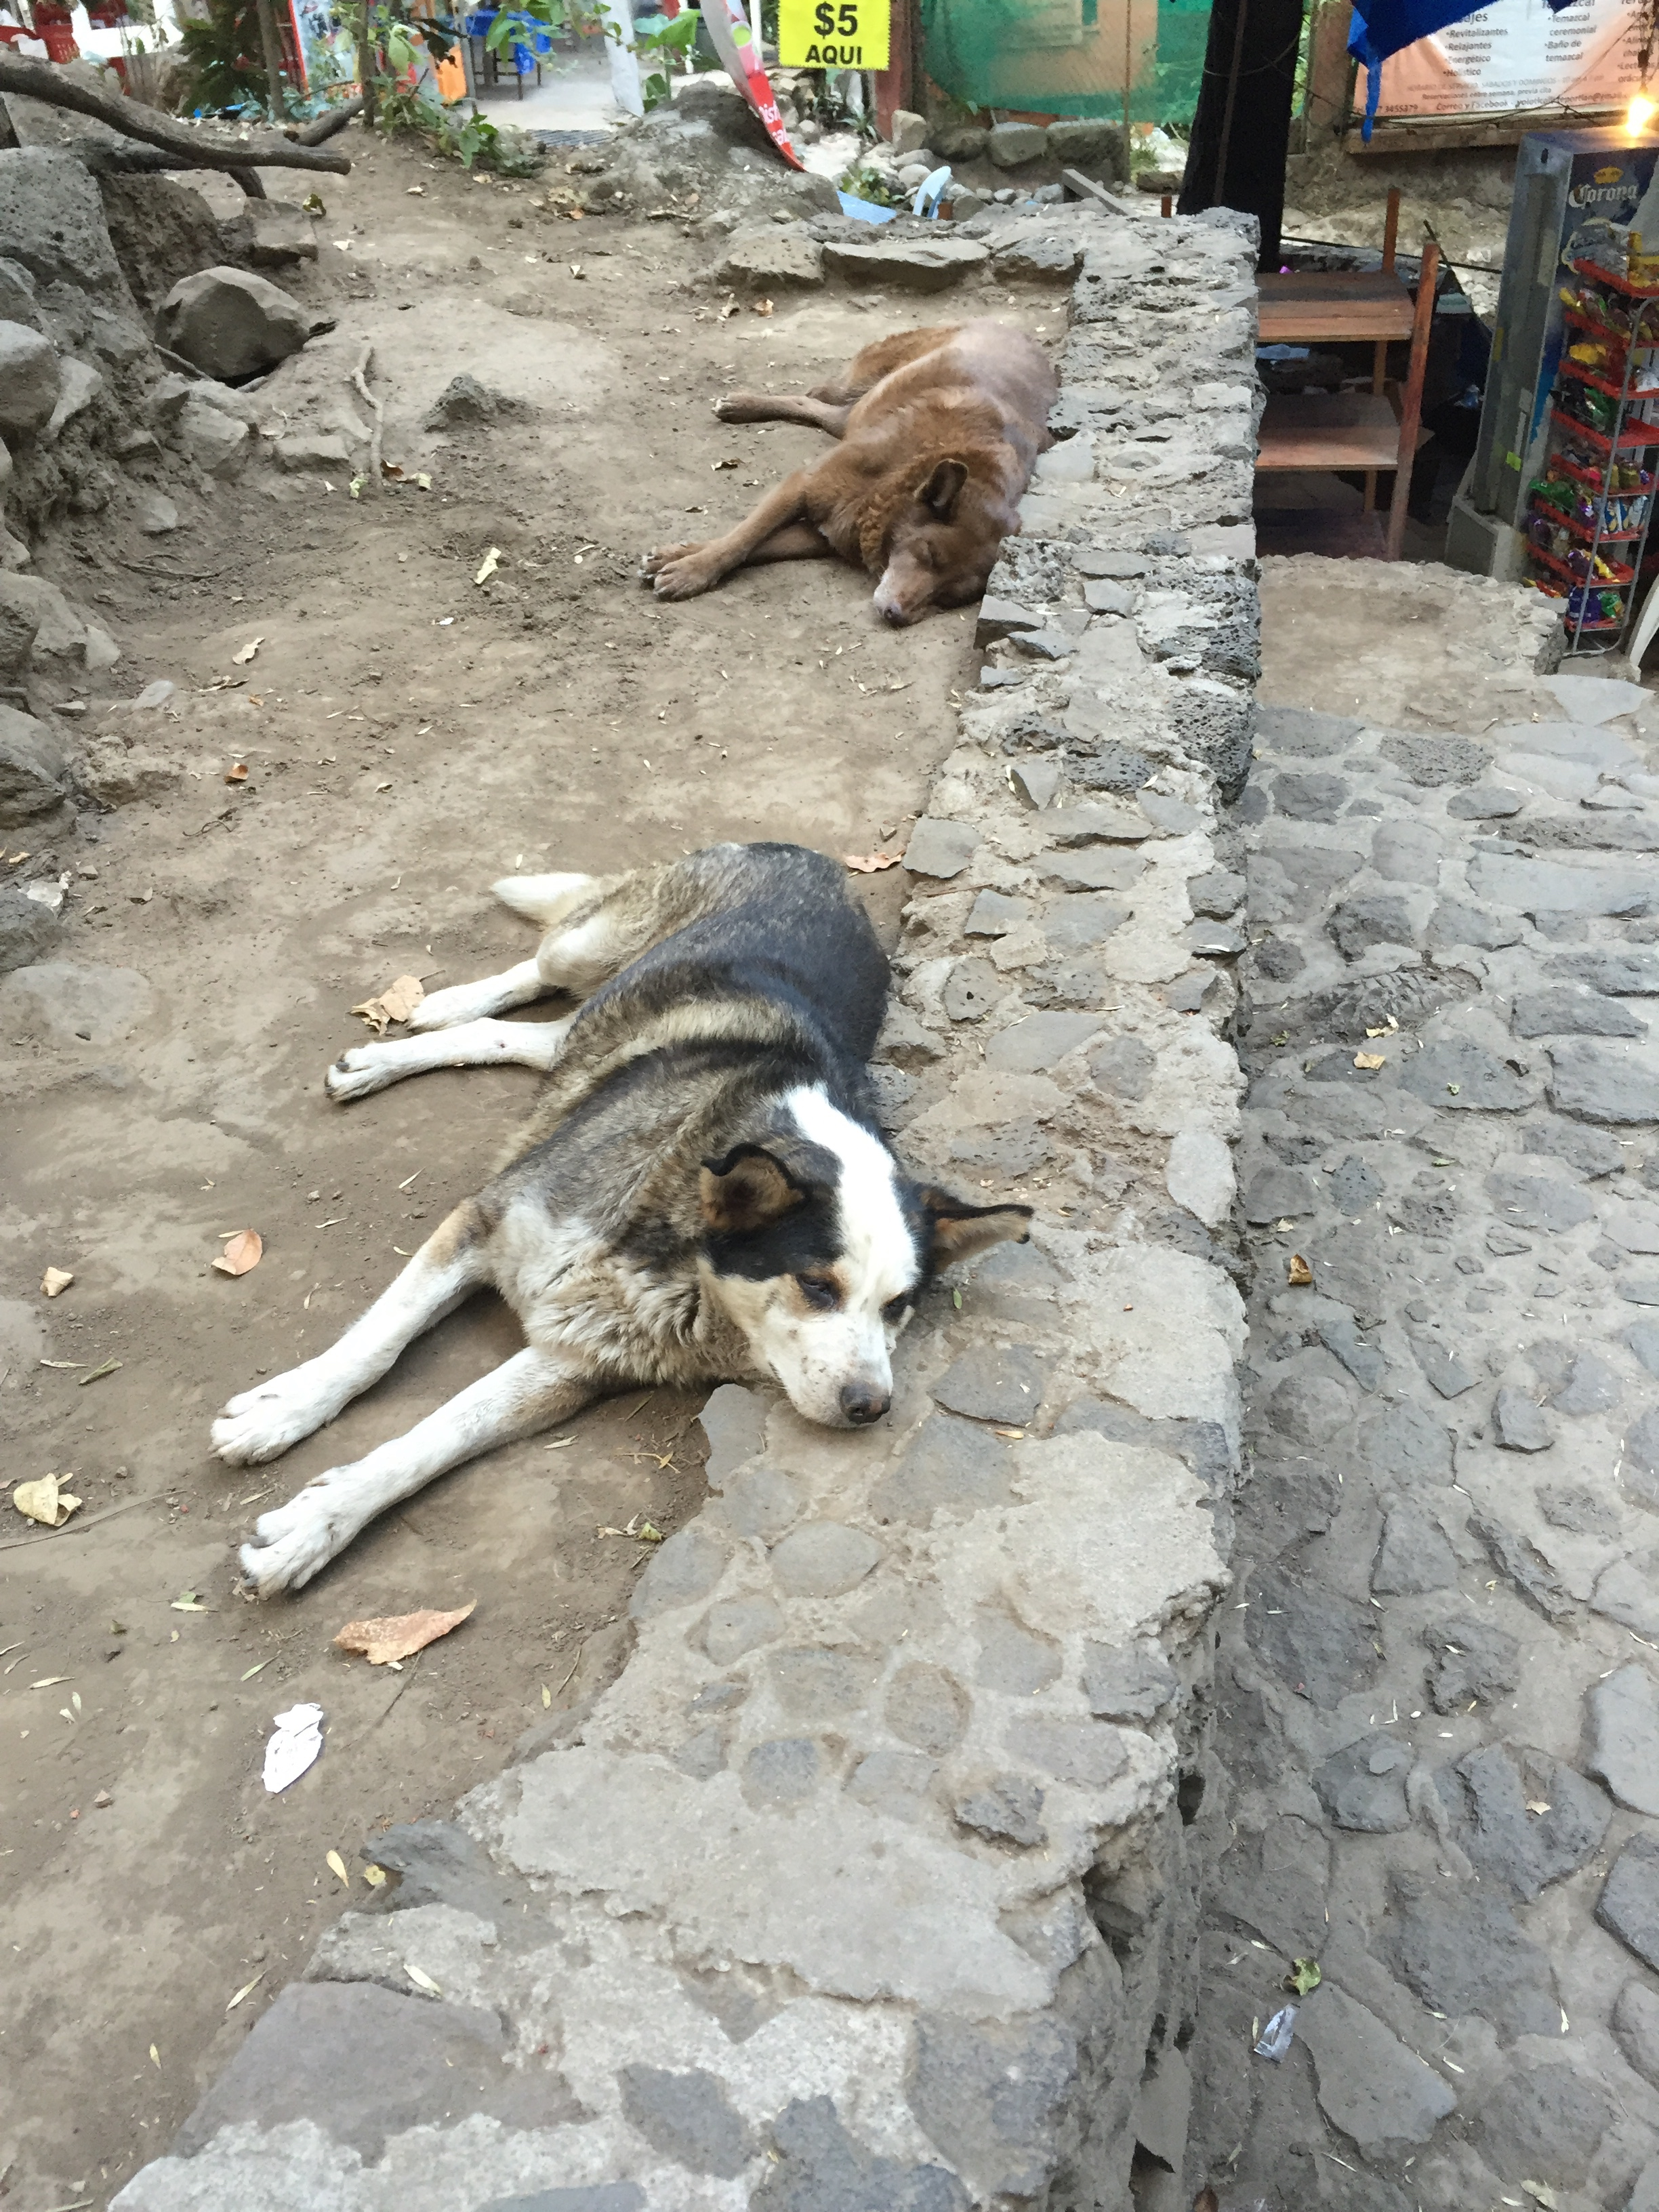 Two fat dogs sleeping in the dirt in Tepoztlan.